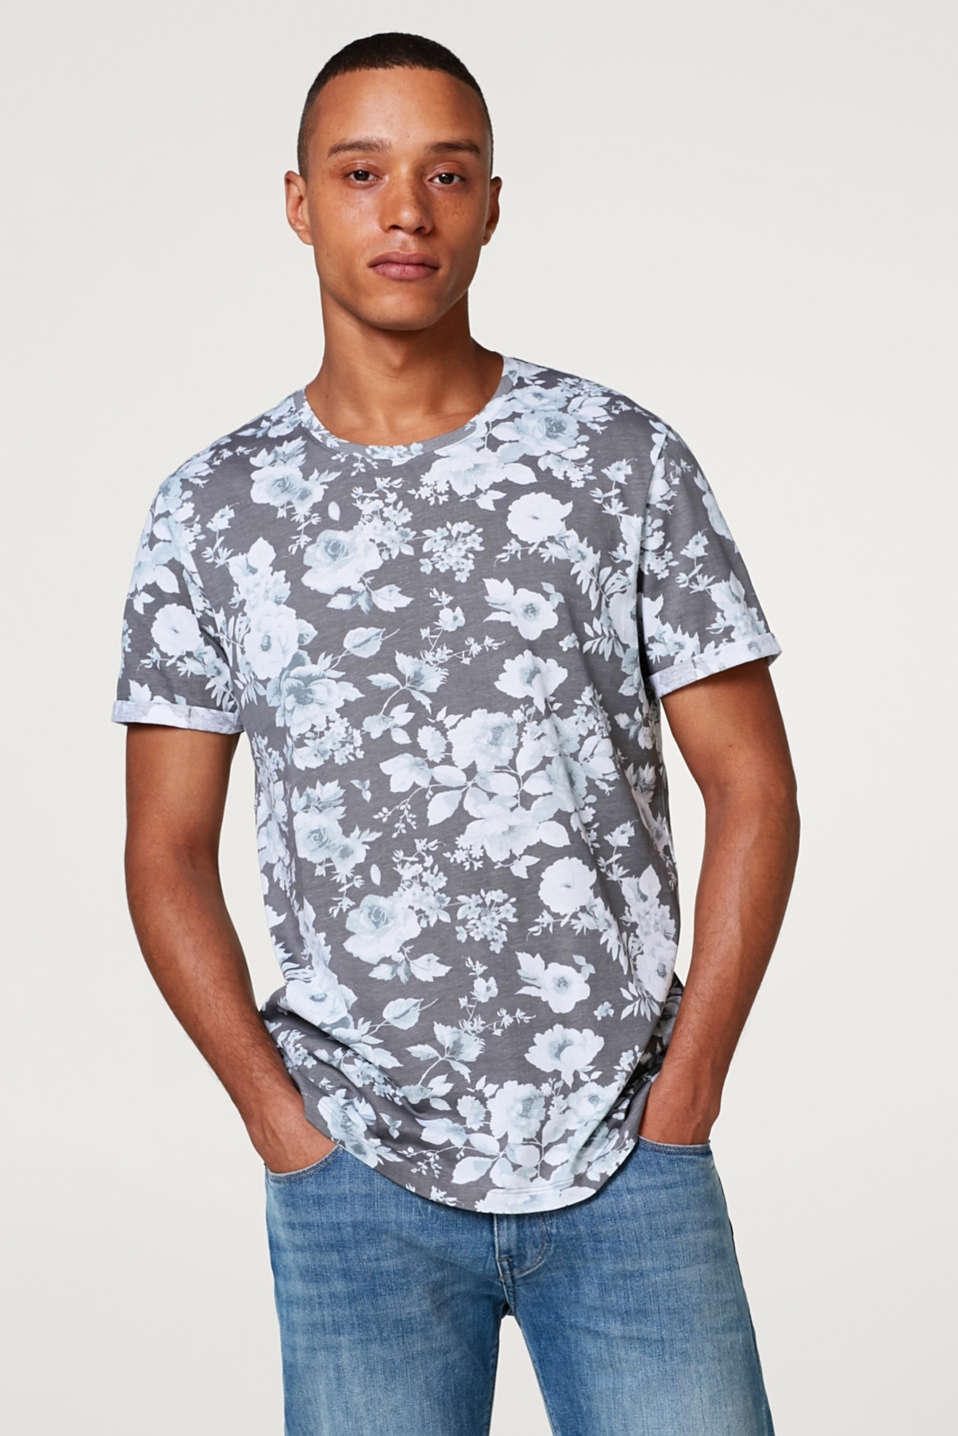 edc - Jersey T-shirt with a floral, all-over print